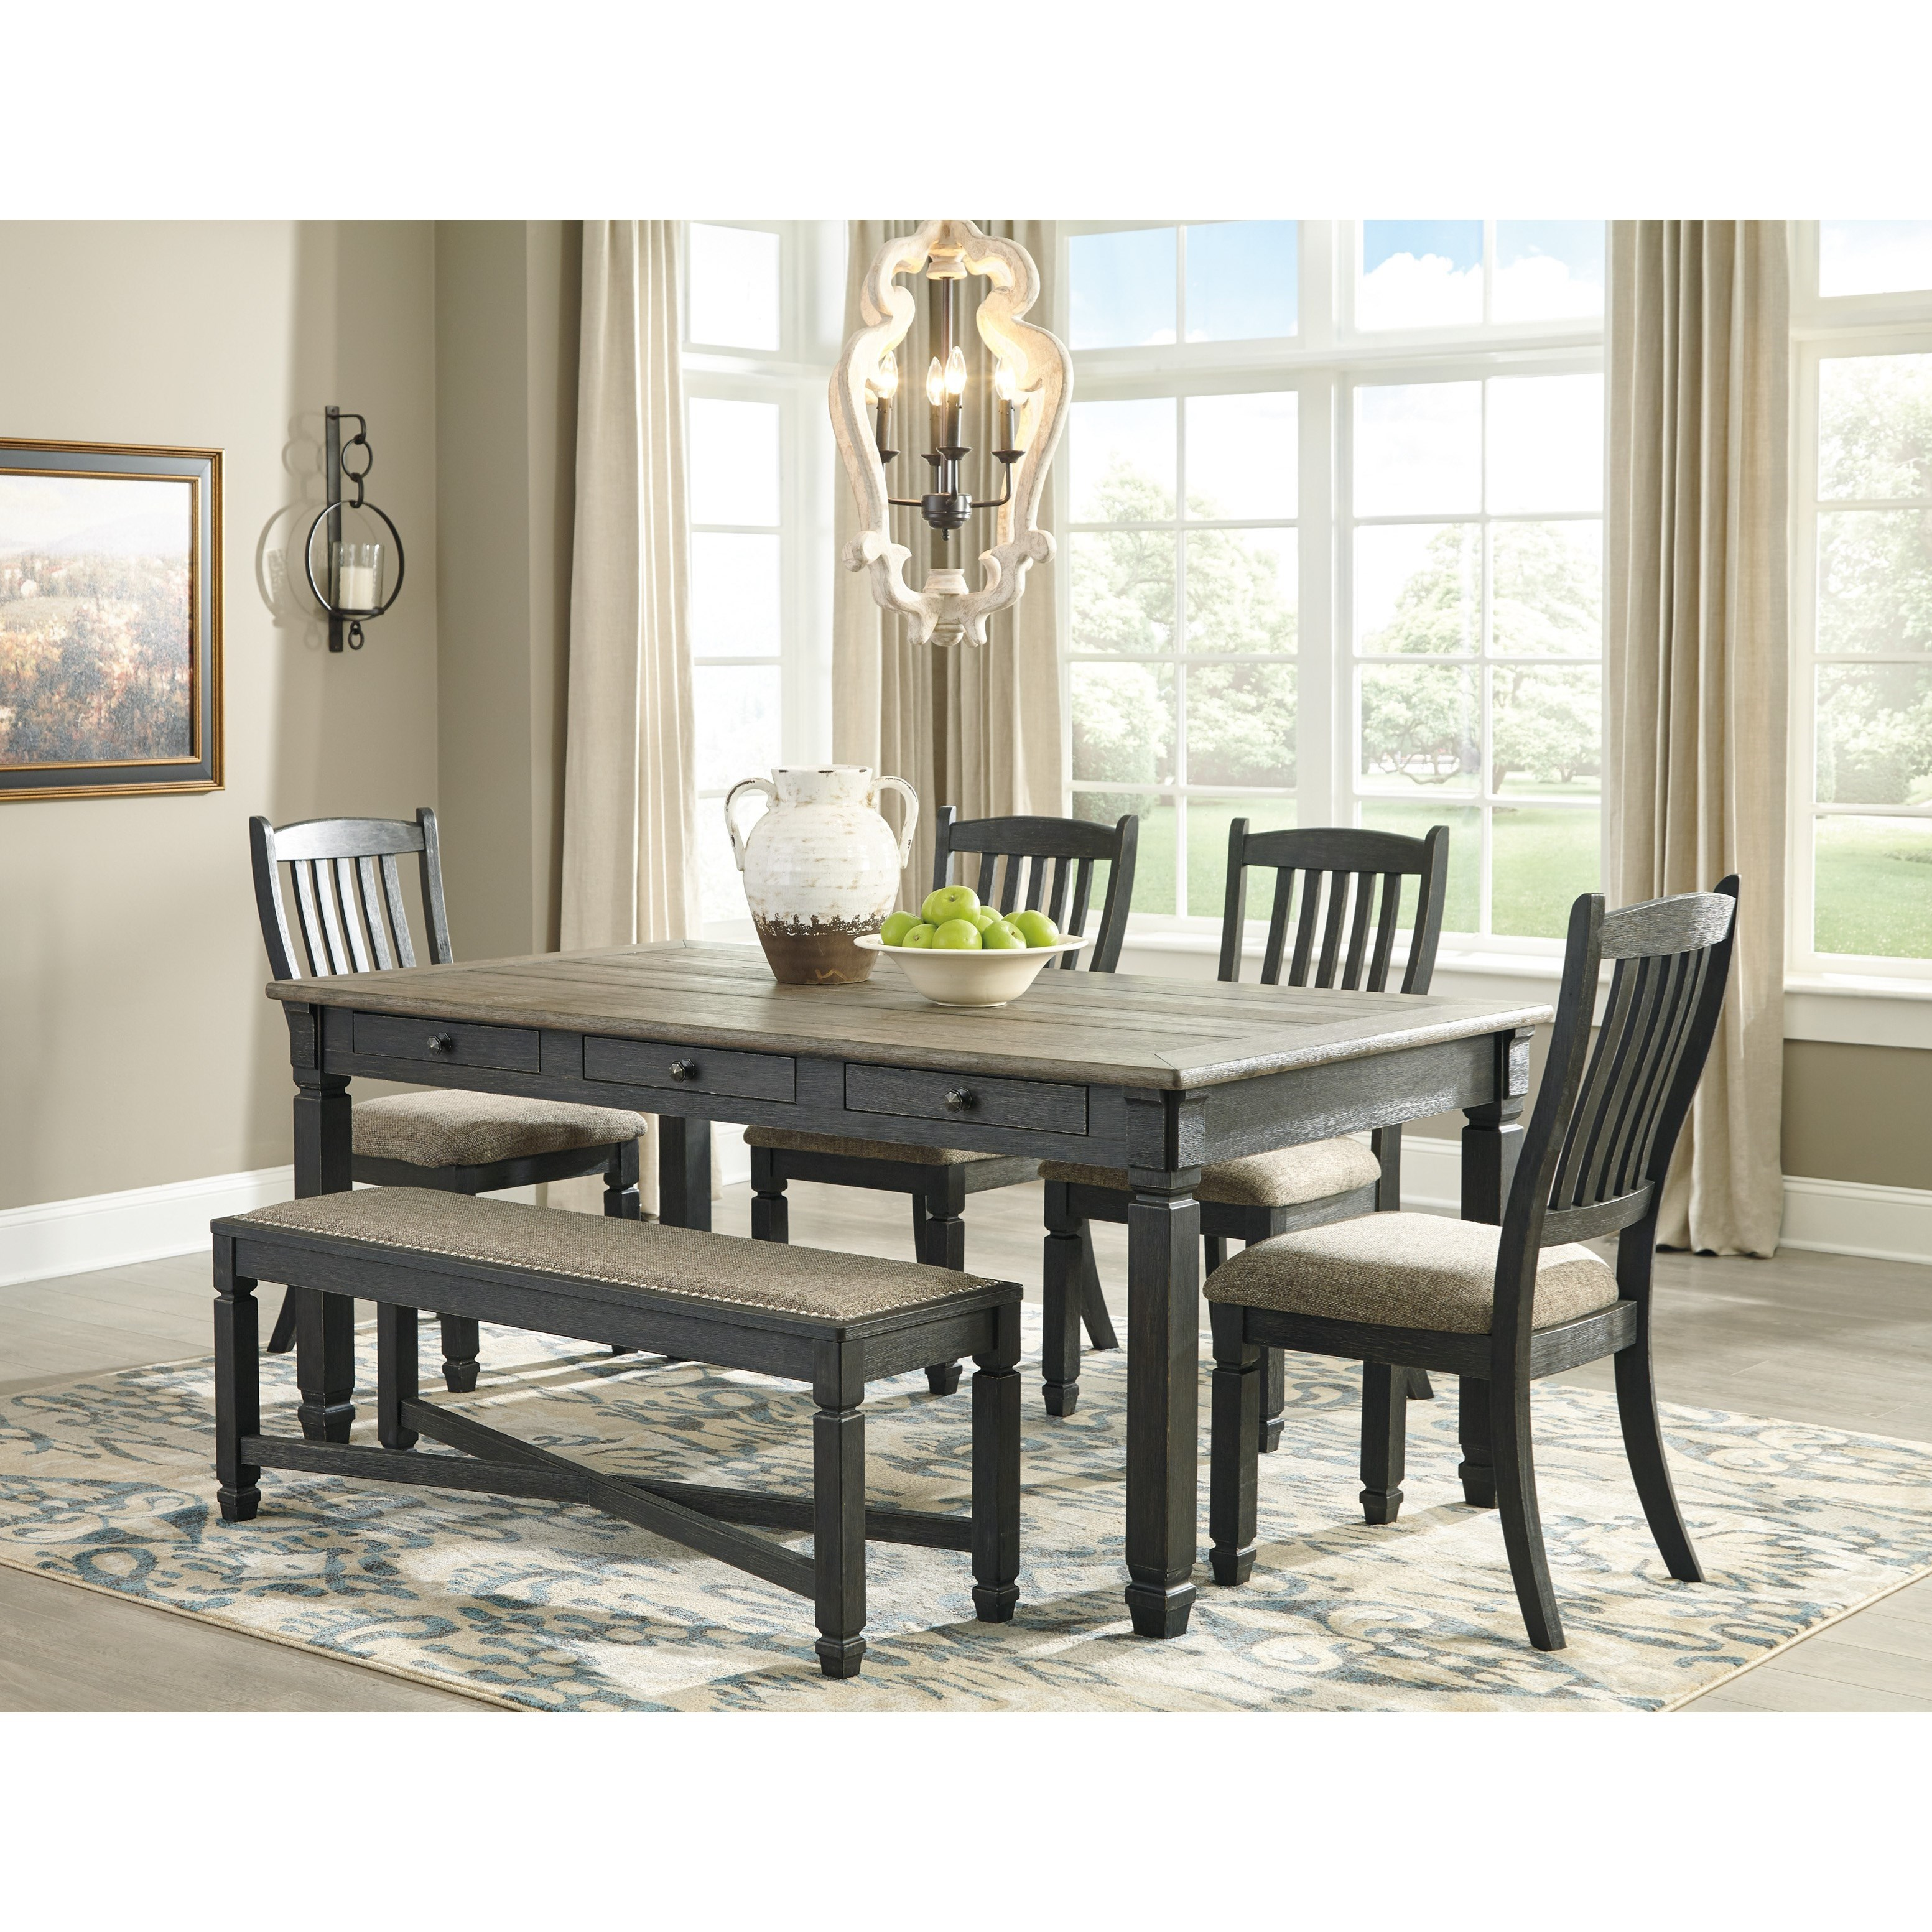 Tyler Creek Table and Chair Set with Bench by Ashley (Signature Design) at Johnny Janosik